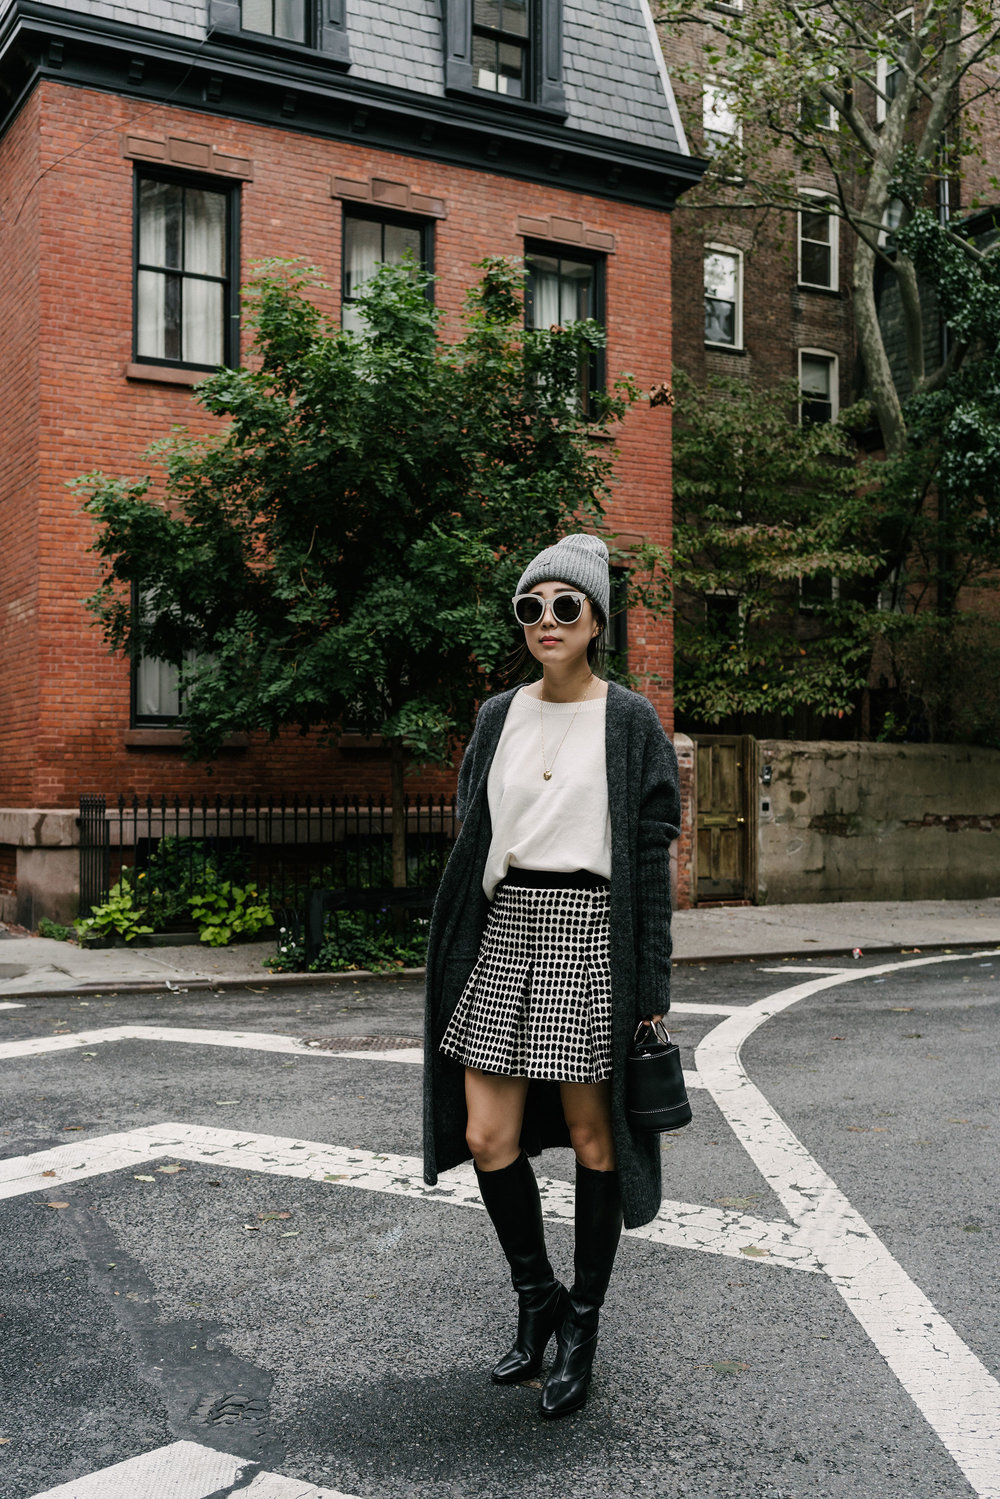 Acne Studios Cardigan and Hat, Vince Top, Proenza Schouler Skirt, Balenciaga Boots, Simon Miller Bag, Gentle Monster Sunglasses